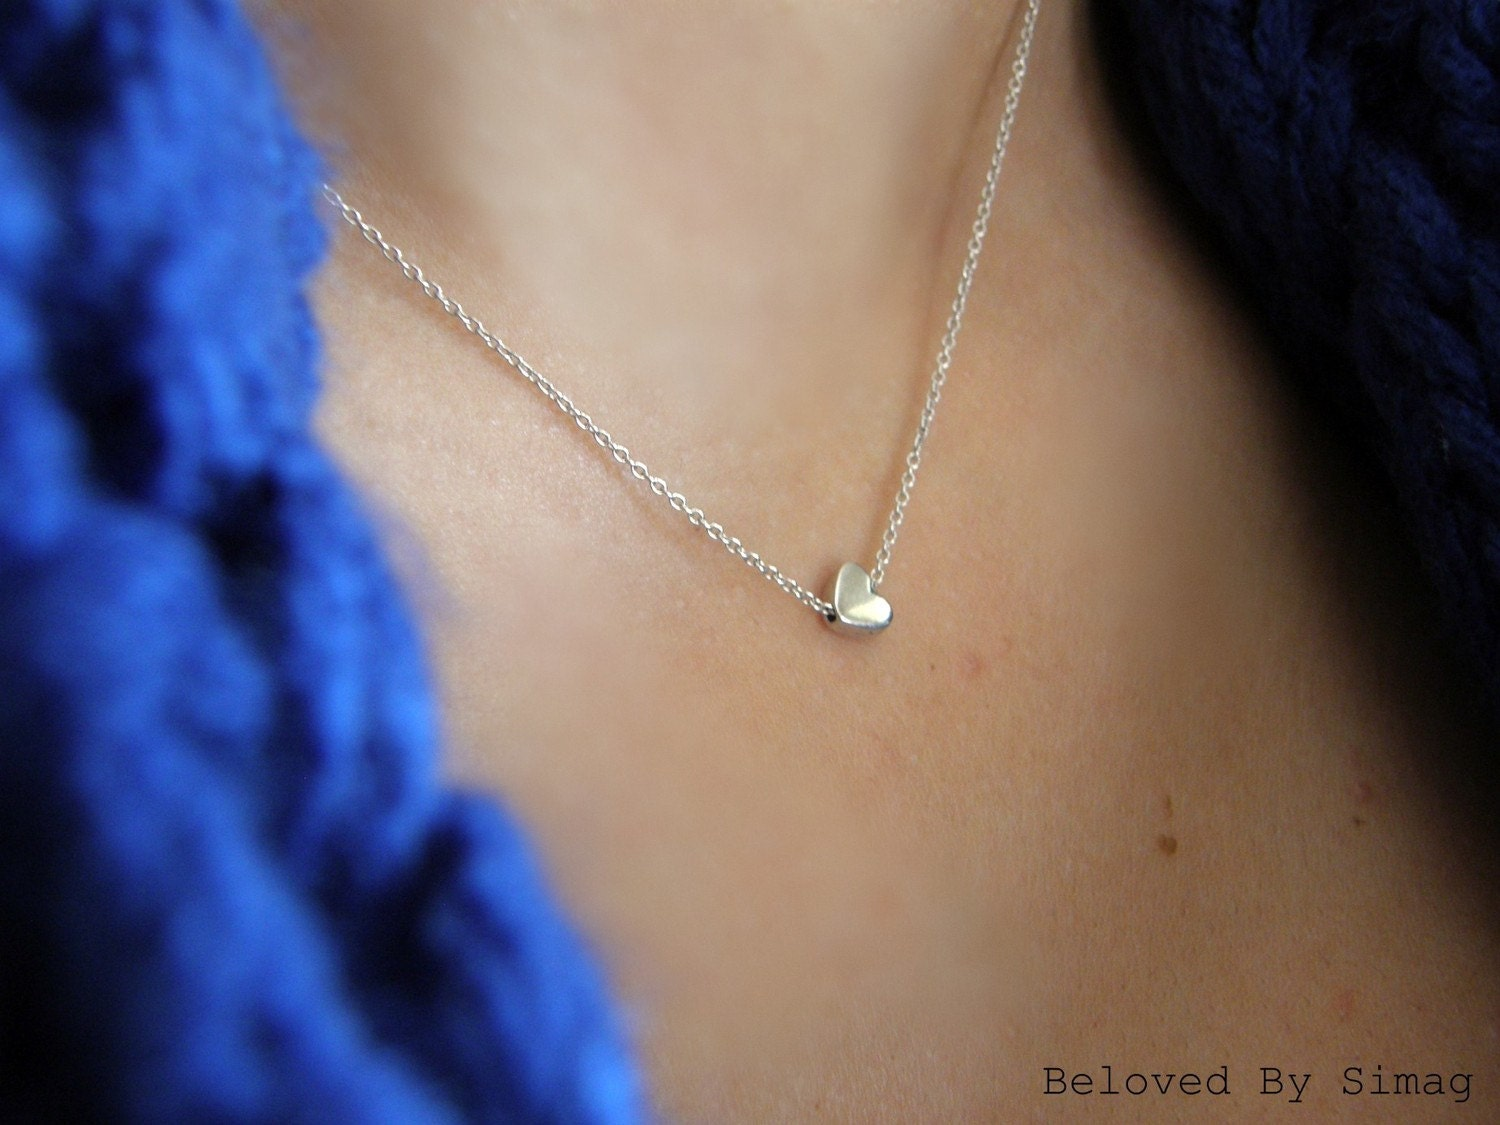 BELOVED  - tiny heart as a reminder to enjoy the little things - Beautiful  (and) Simple Gift - Handmade By Simag